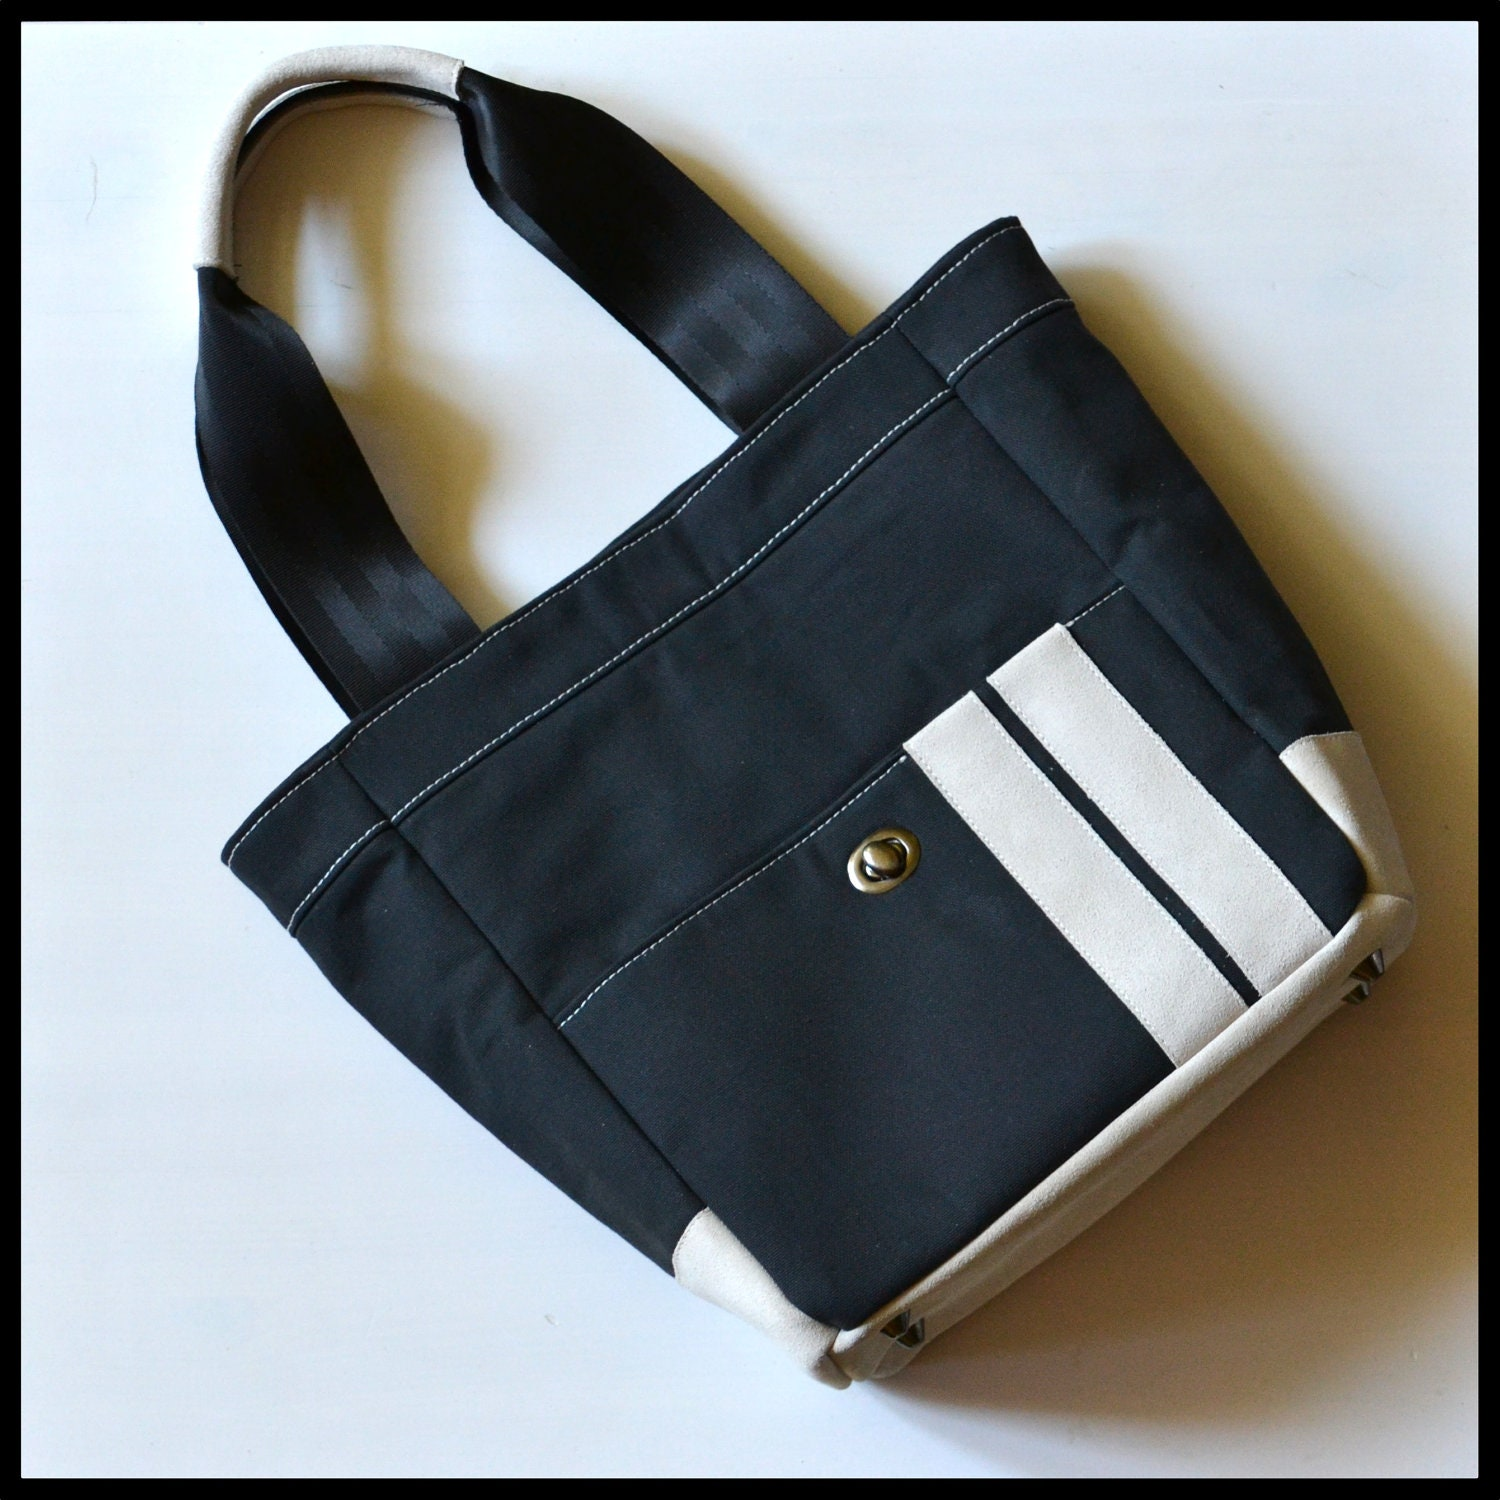 Everyday tote bag in black canvas and white suede leather